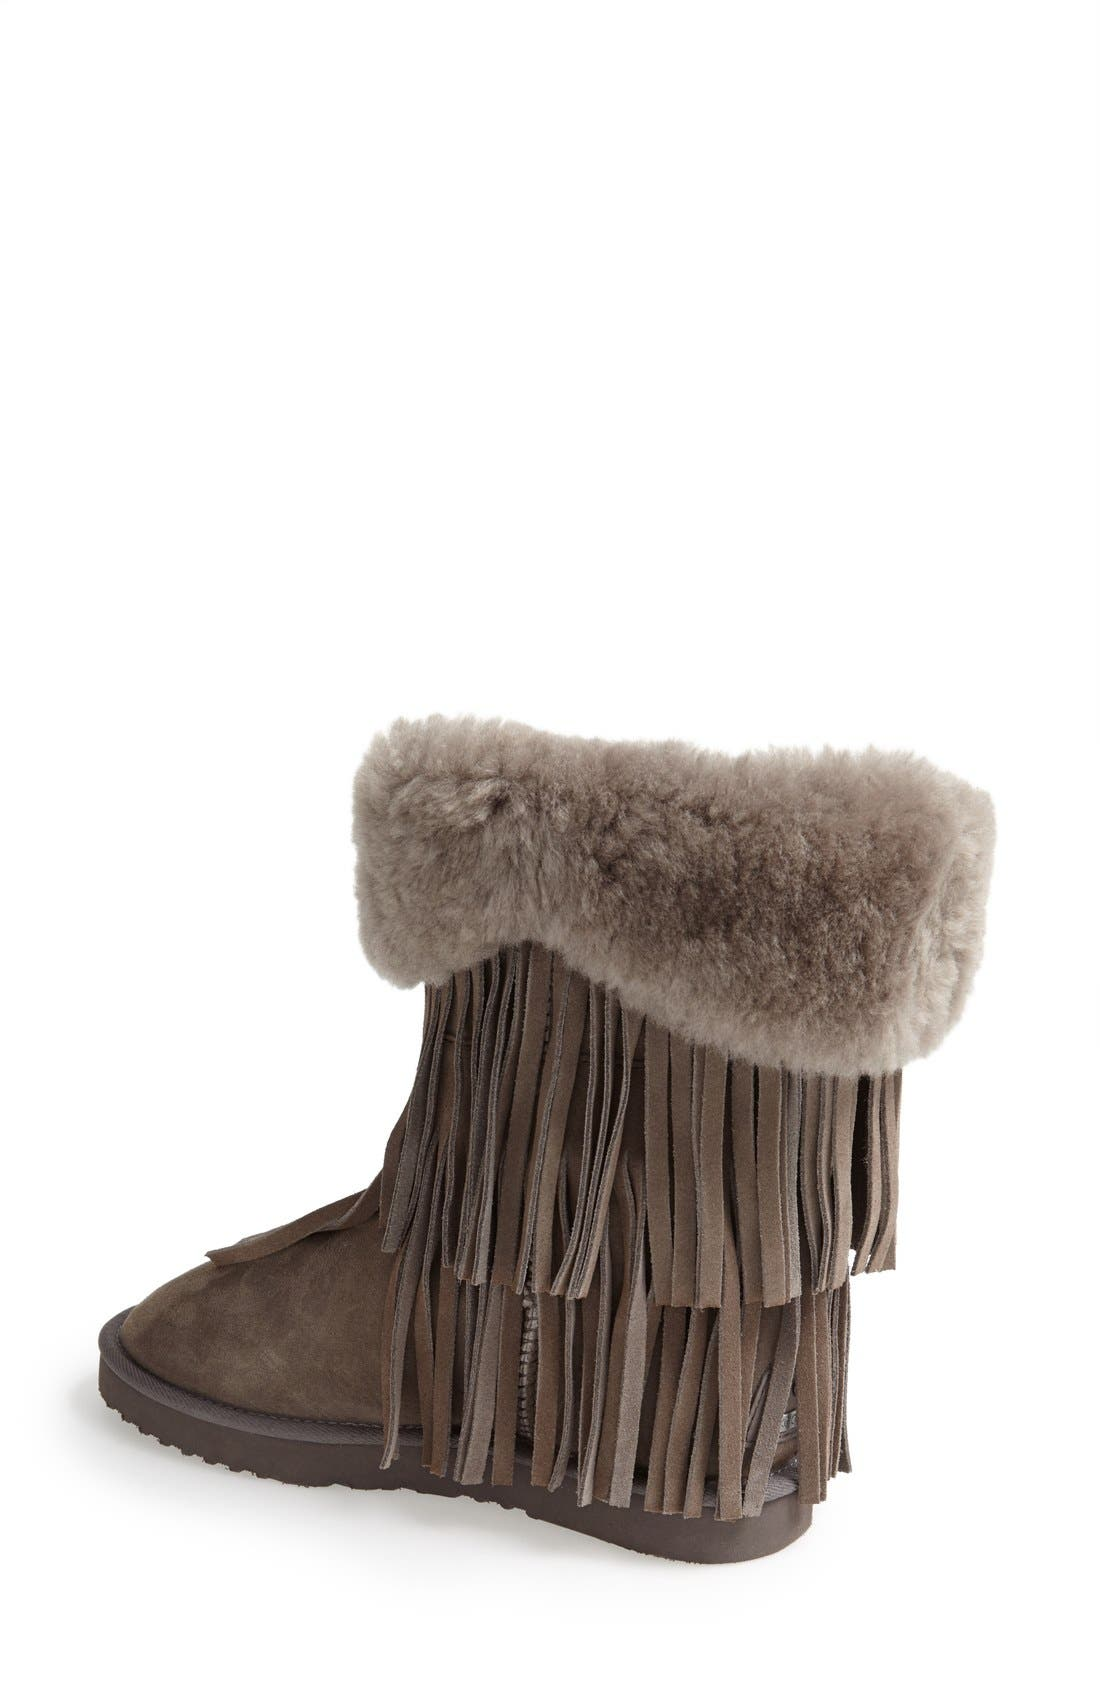 'Haley II' Genuine Shearling Short Boot,                             Alternate thumbnail 4, color,                             020